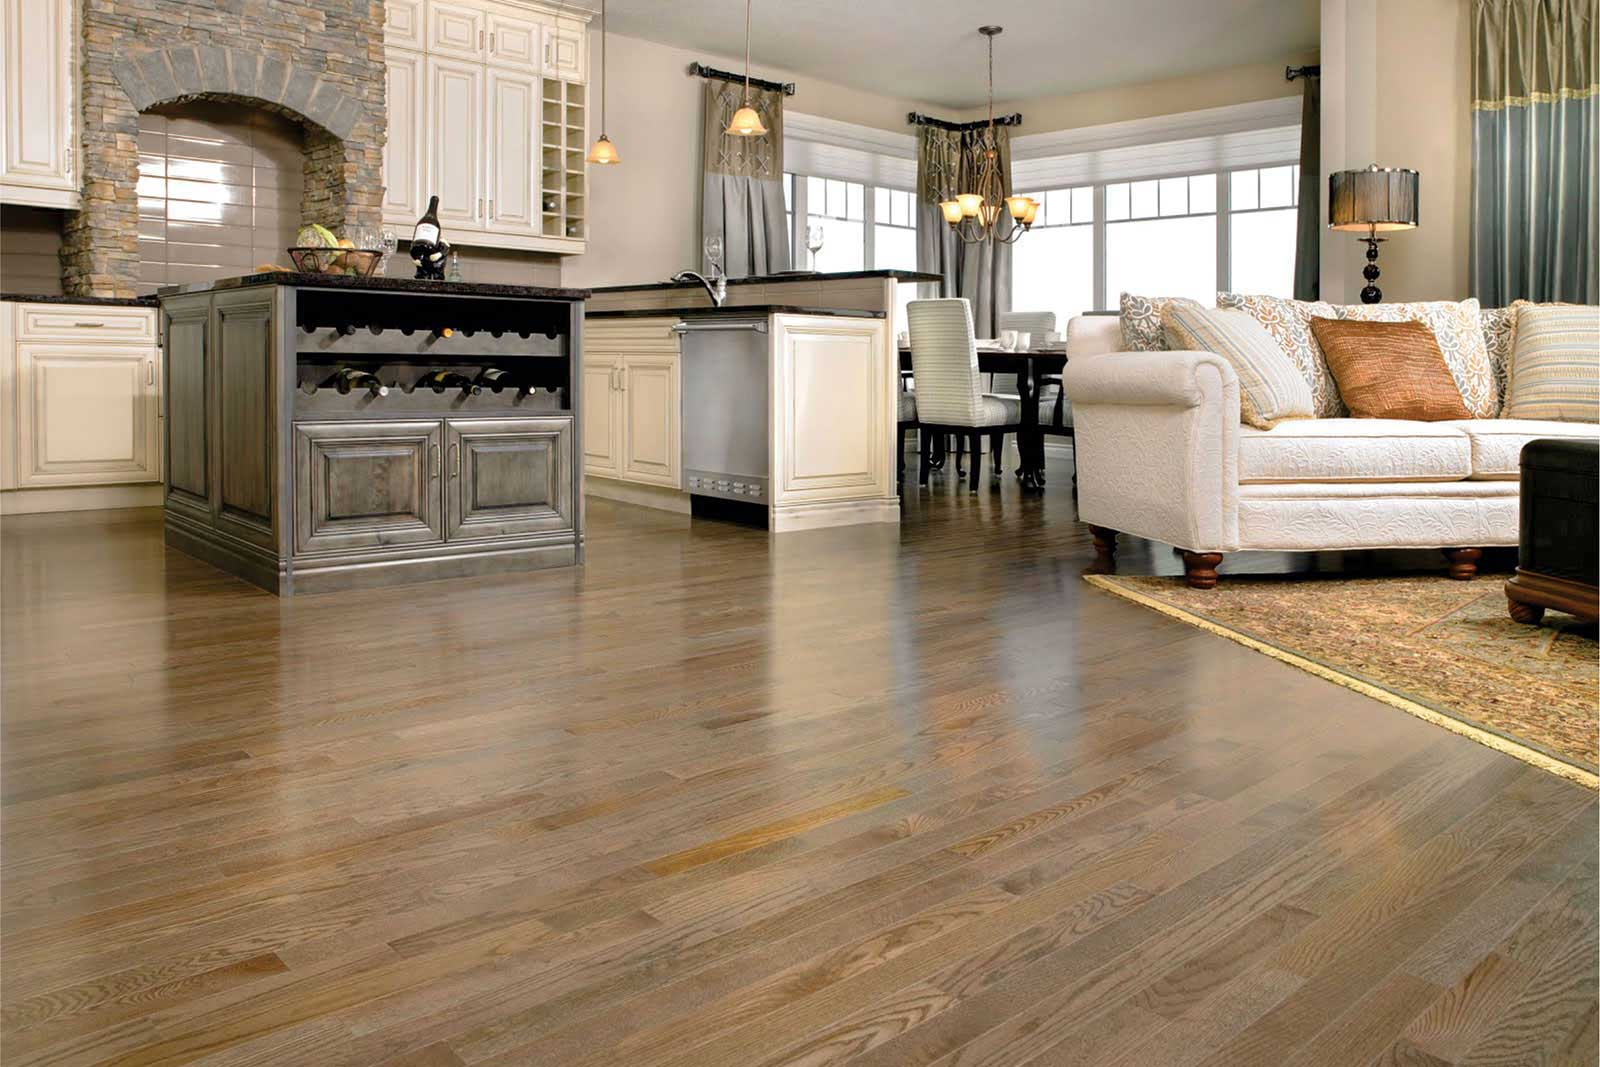 2wood-flooring-types